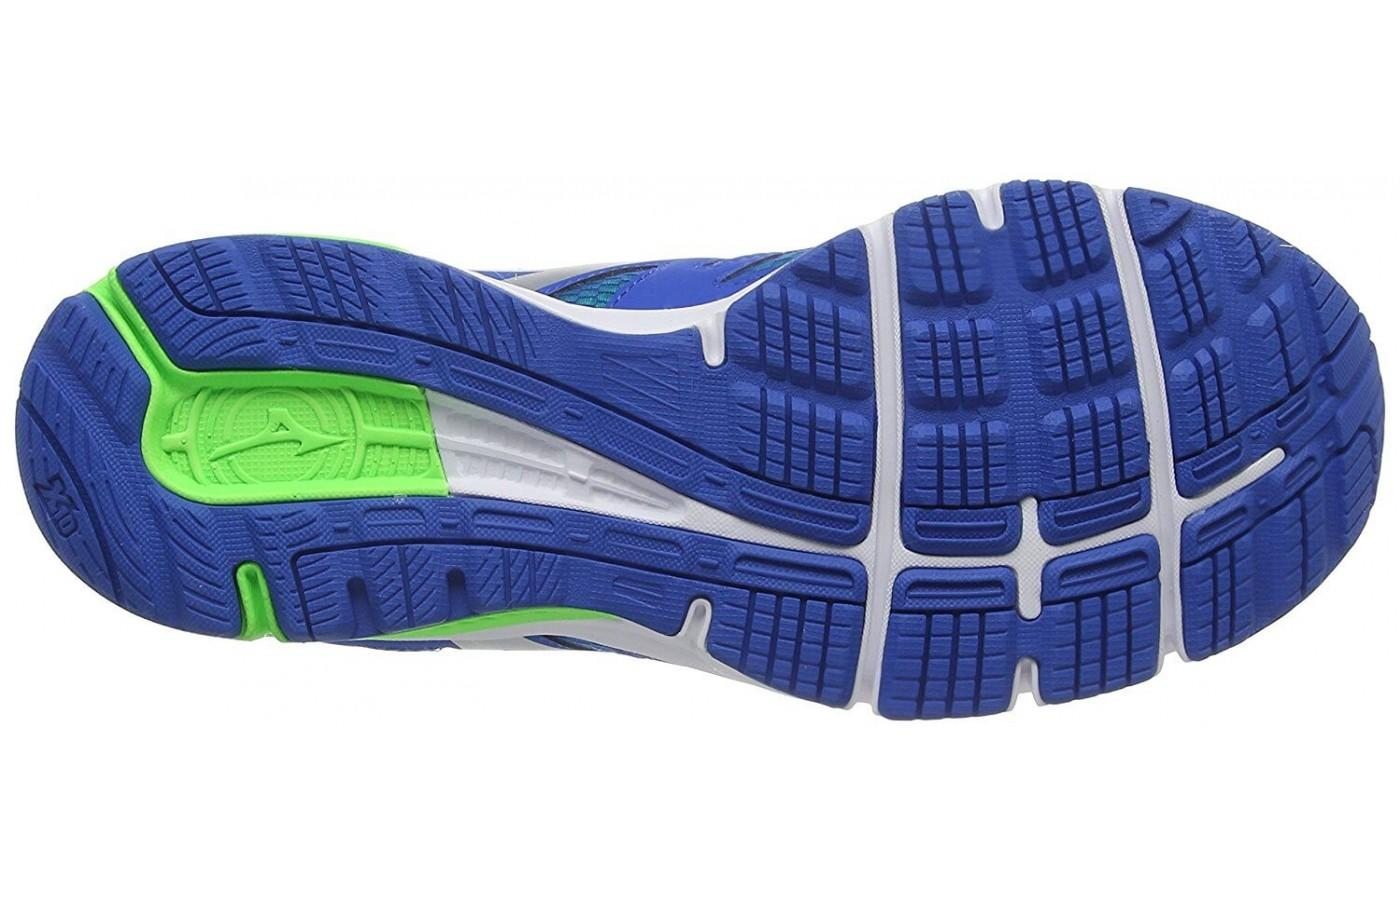 Mizuno Synchro MD features a distinctive outsole